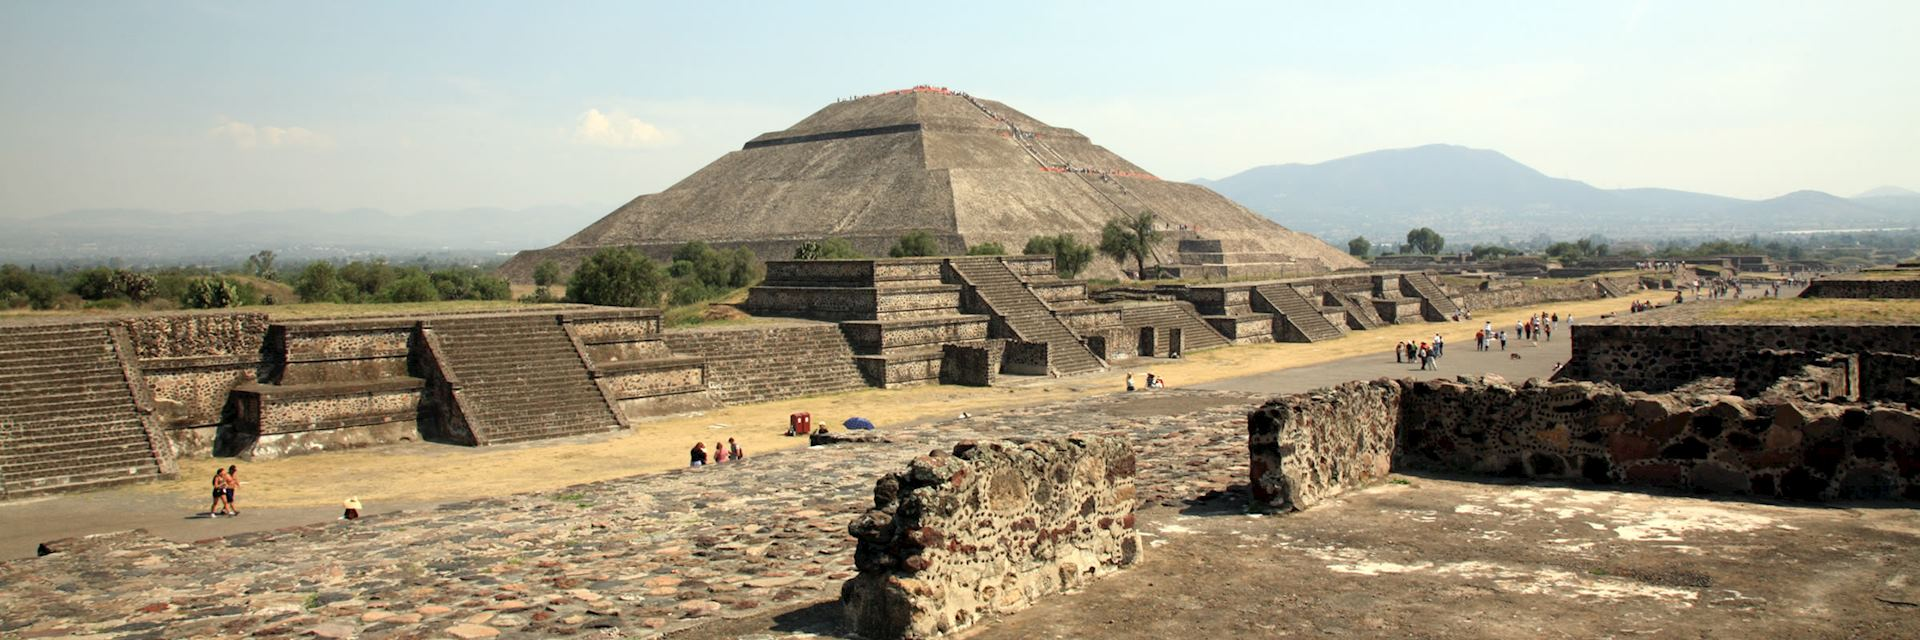 The huge Pyramid of the Sun at Teotihuacan